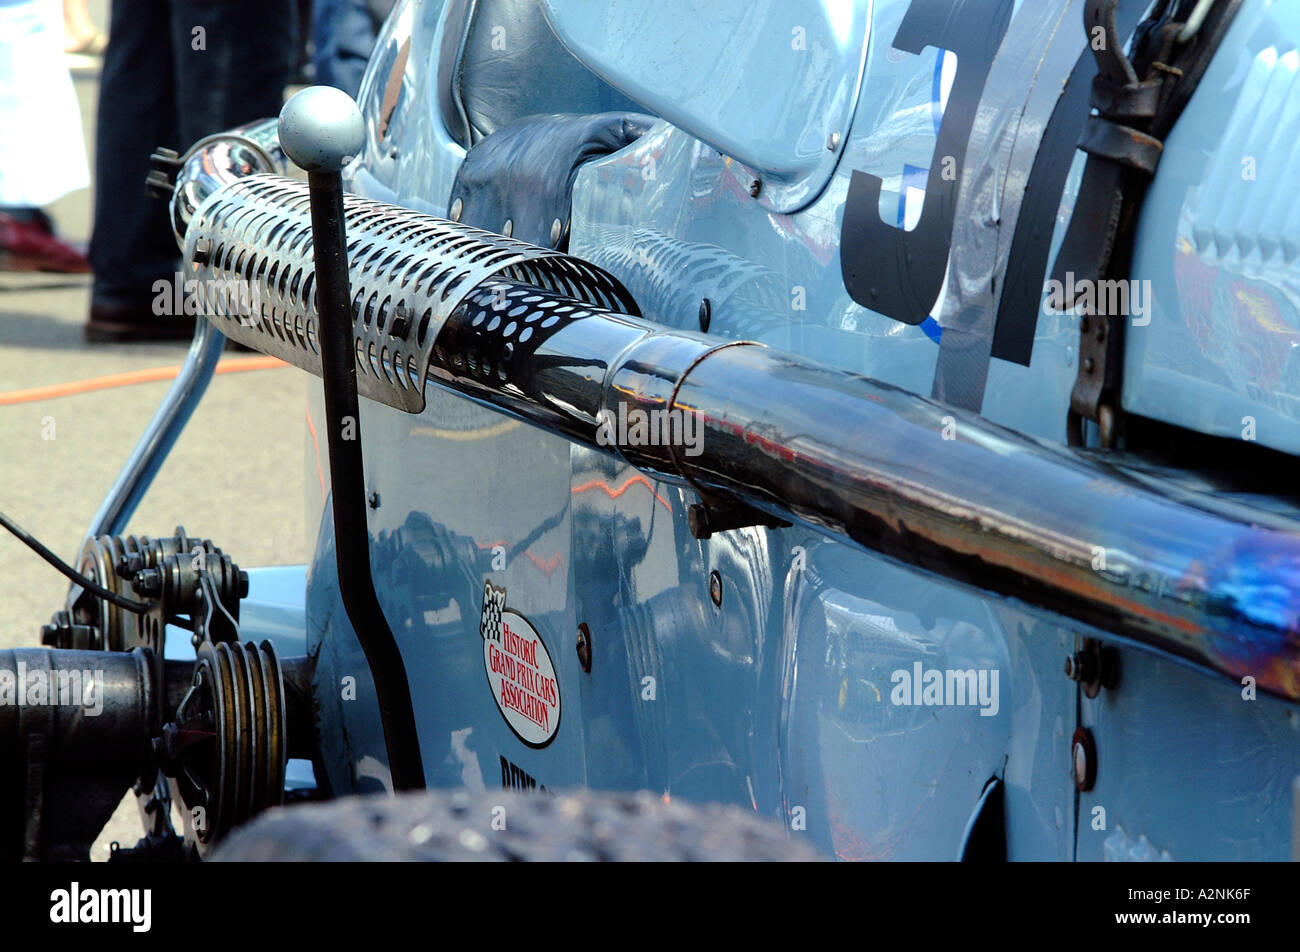 Side view of blue historic racing car - Stock Image